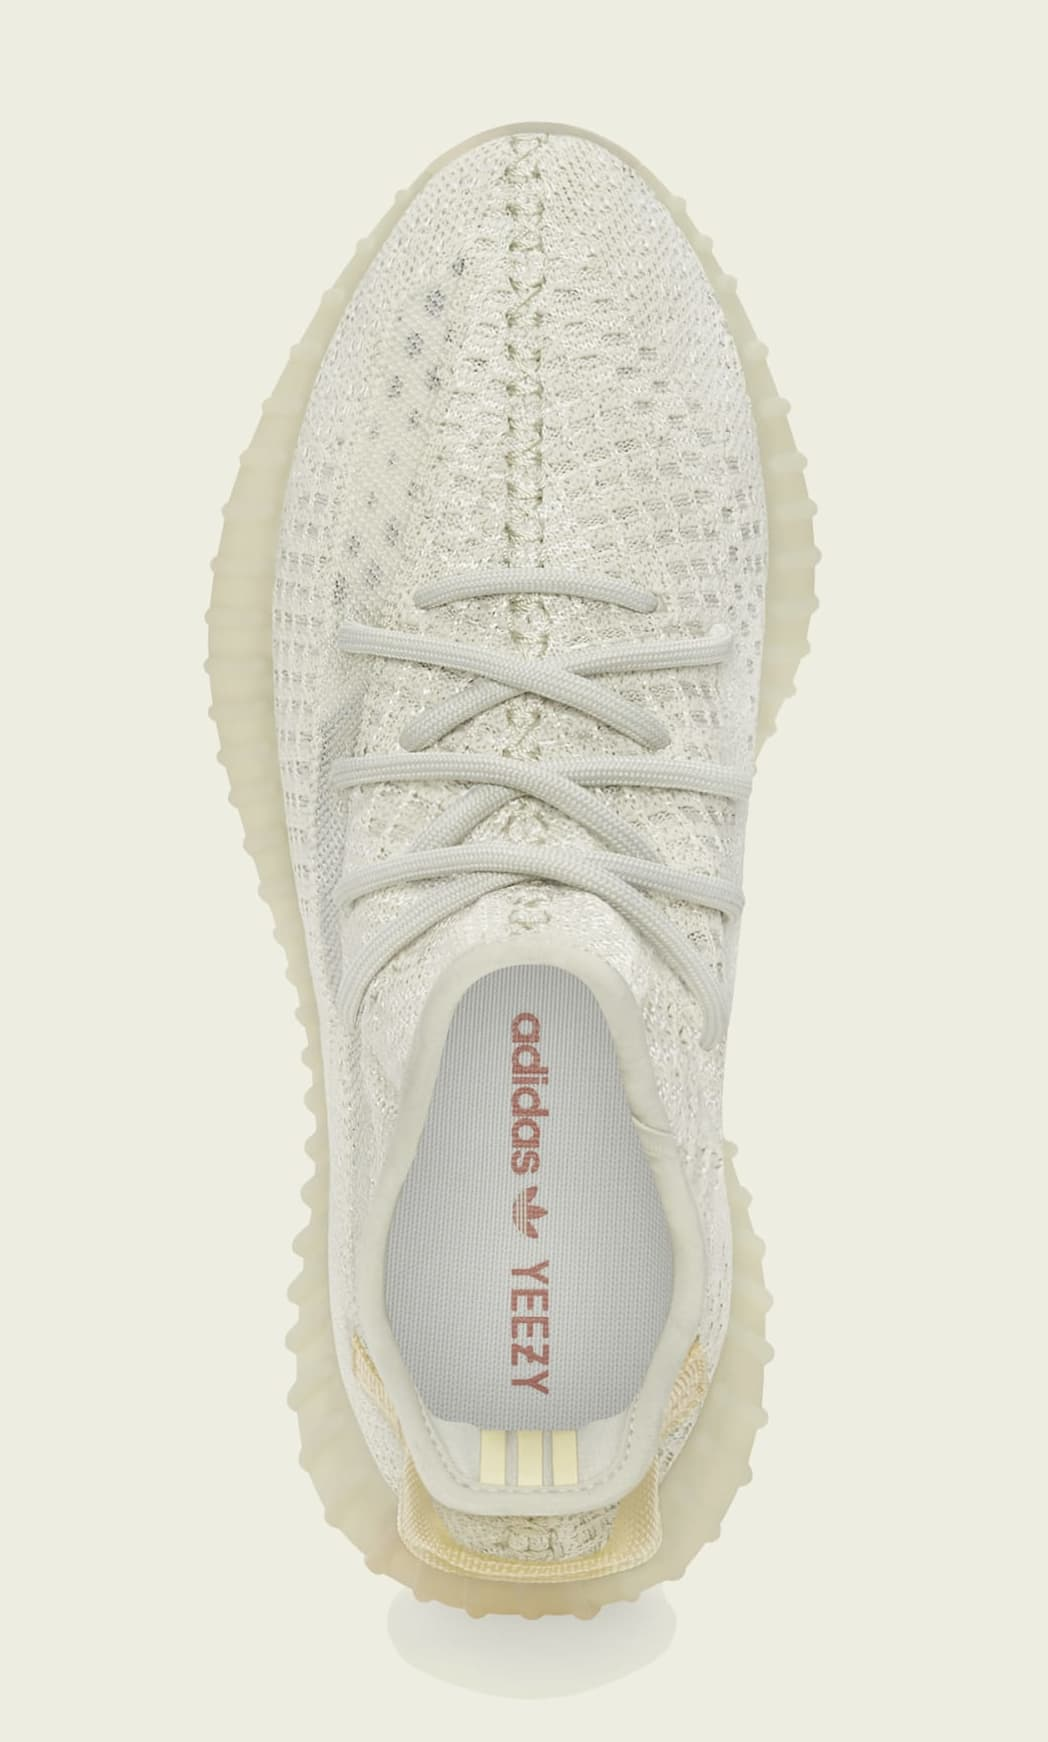 Adidas Yeezy Boost 350 V2 'Light' GY3438 Top